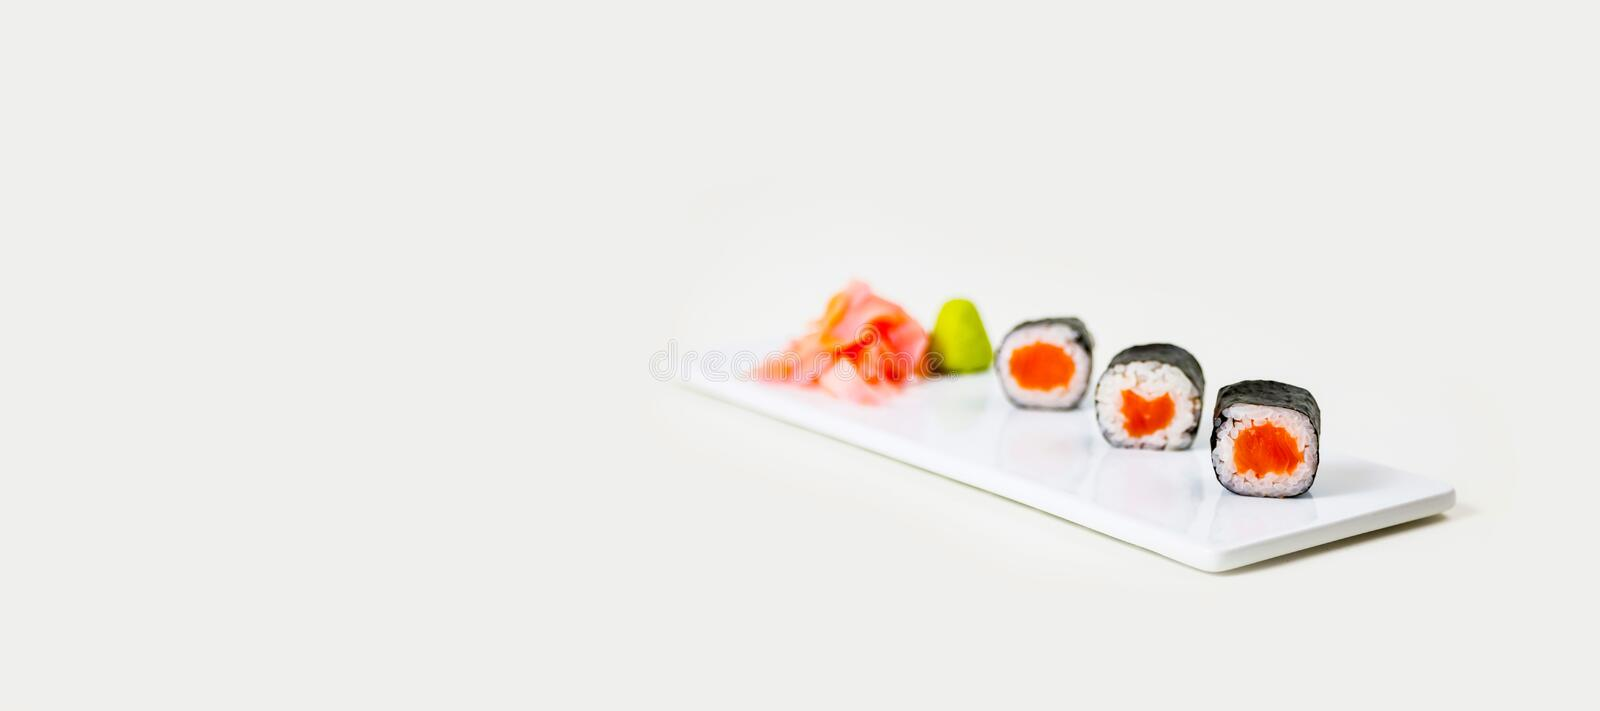 Sushi on a white plate on a white background stock image